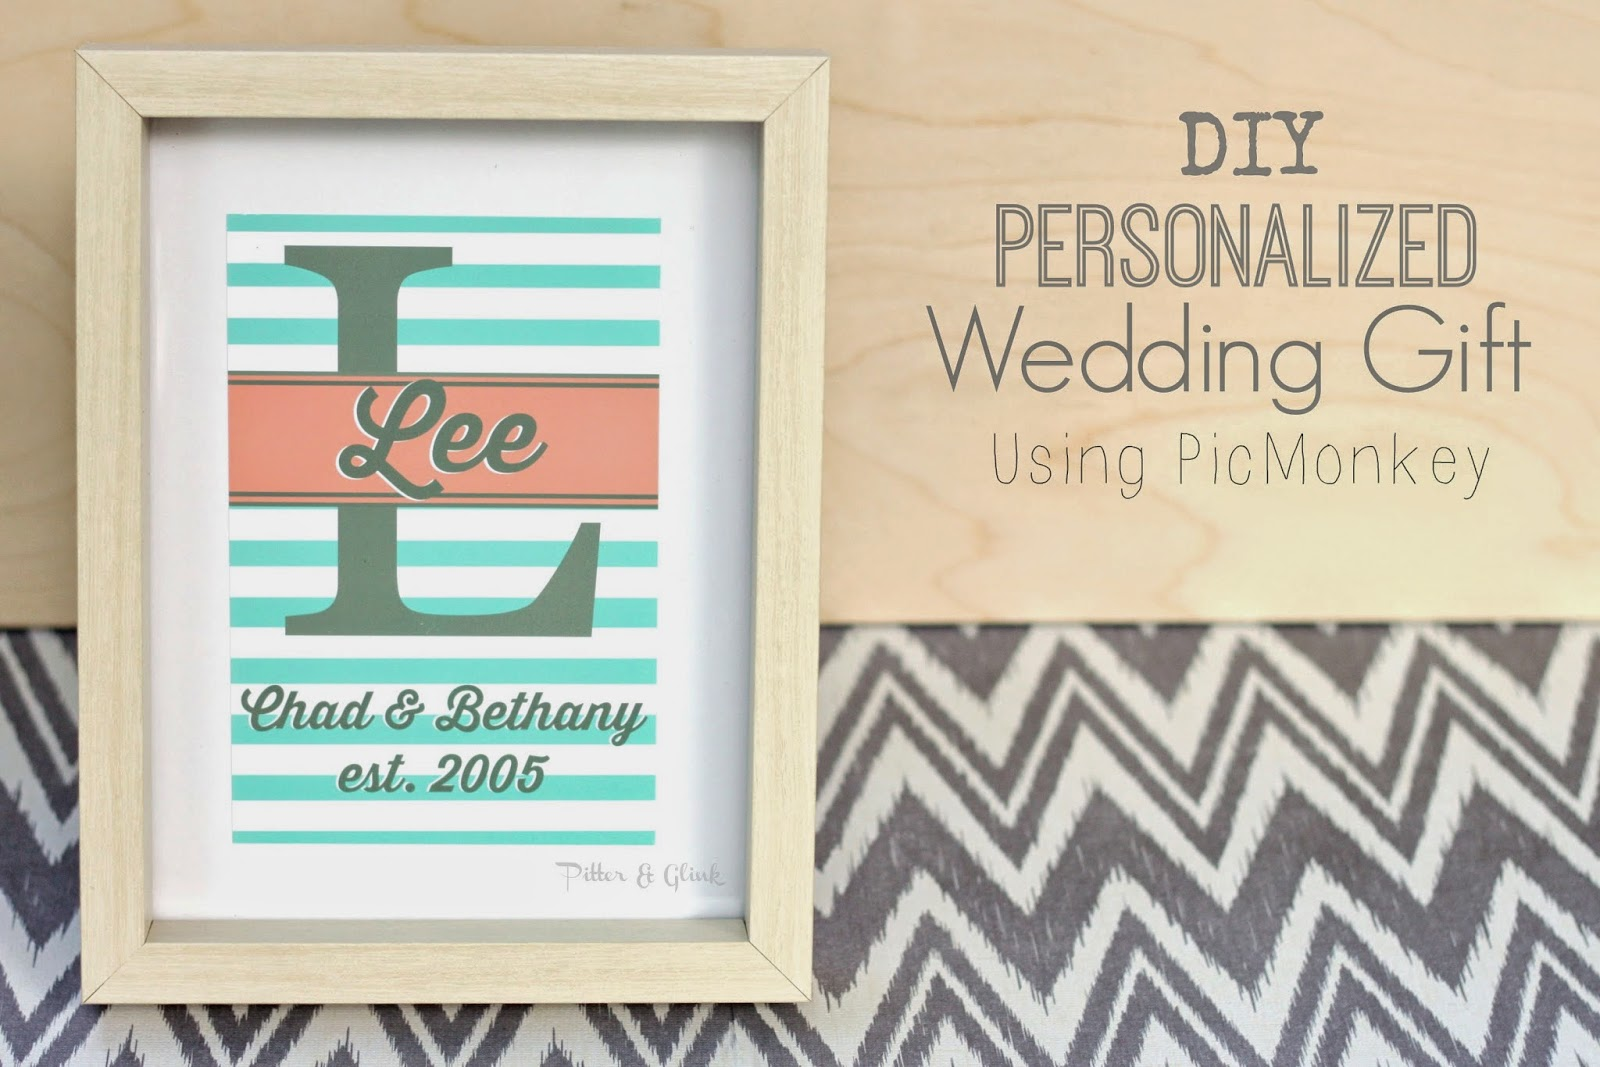 Create an inexpensive, personalized wedding gift using PicMonkey and ...